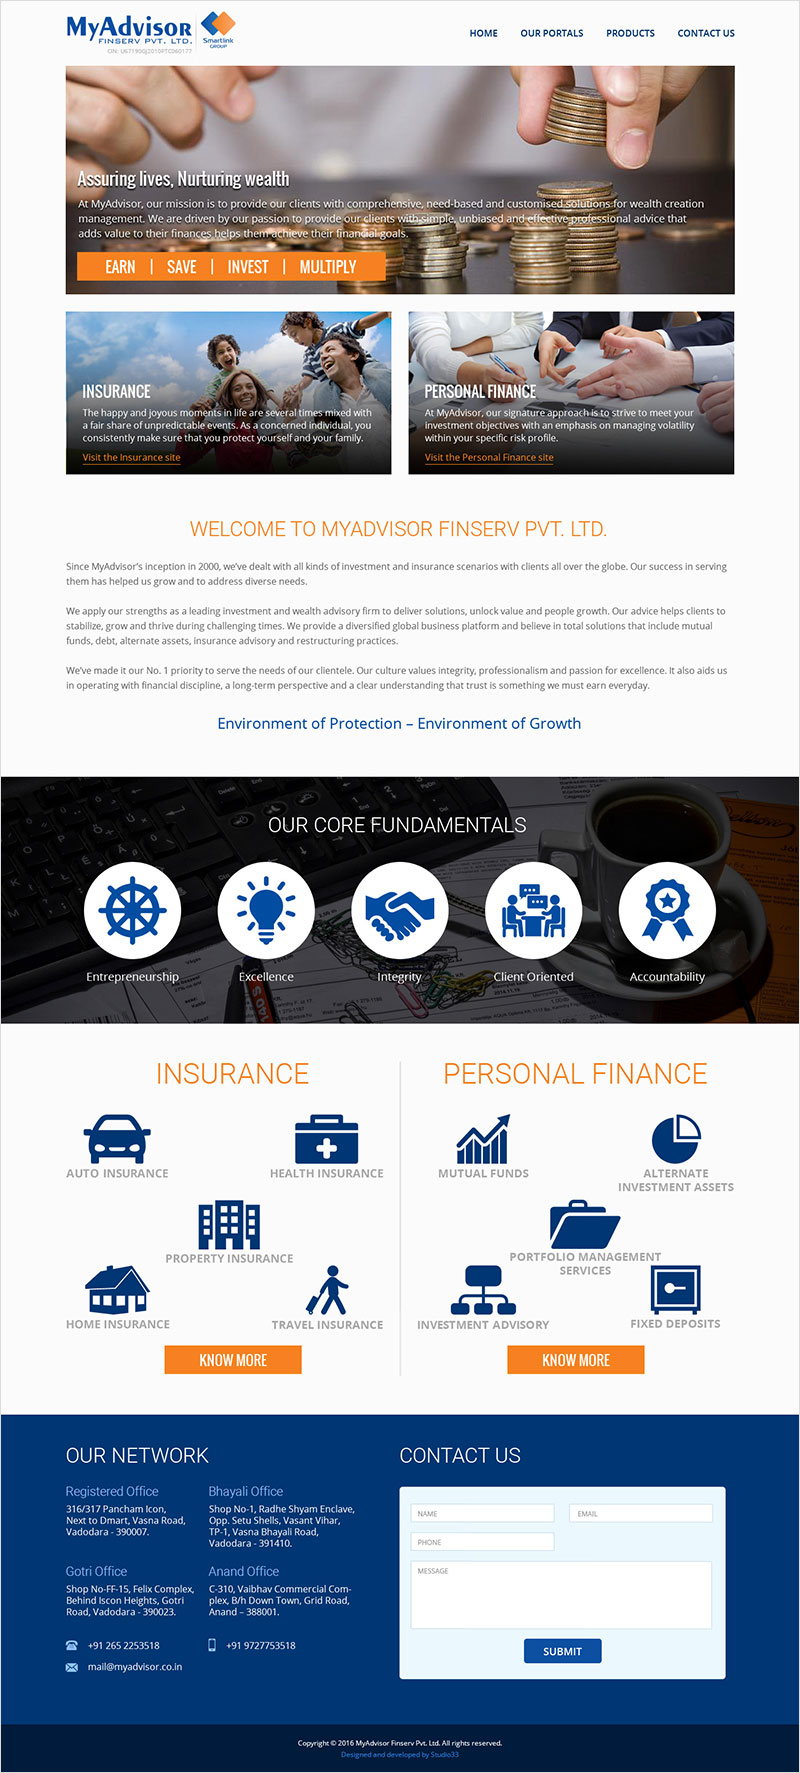 MyAdvisor FinServ Pvt. Ltd. - Website Design